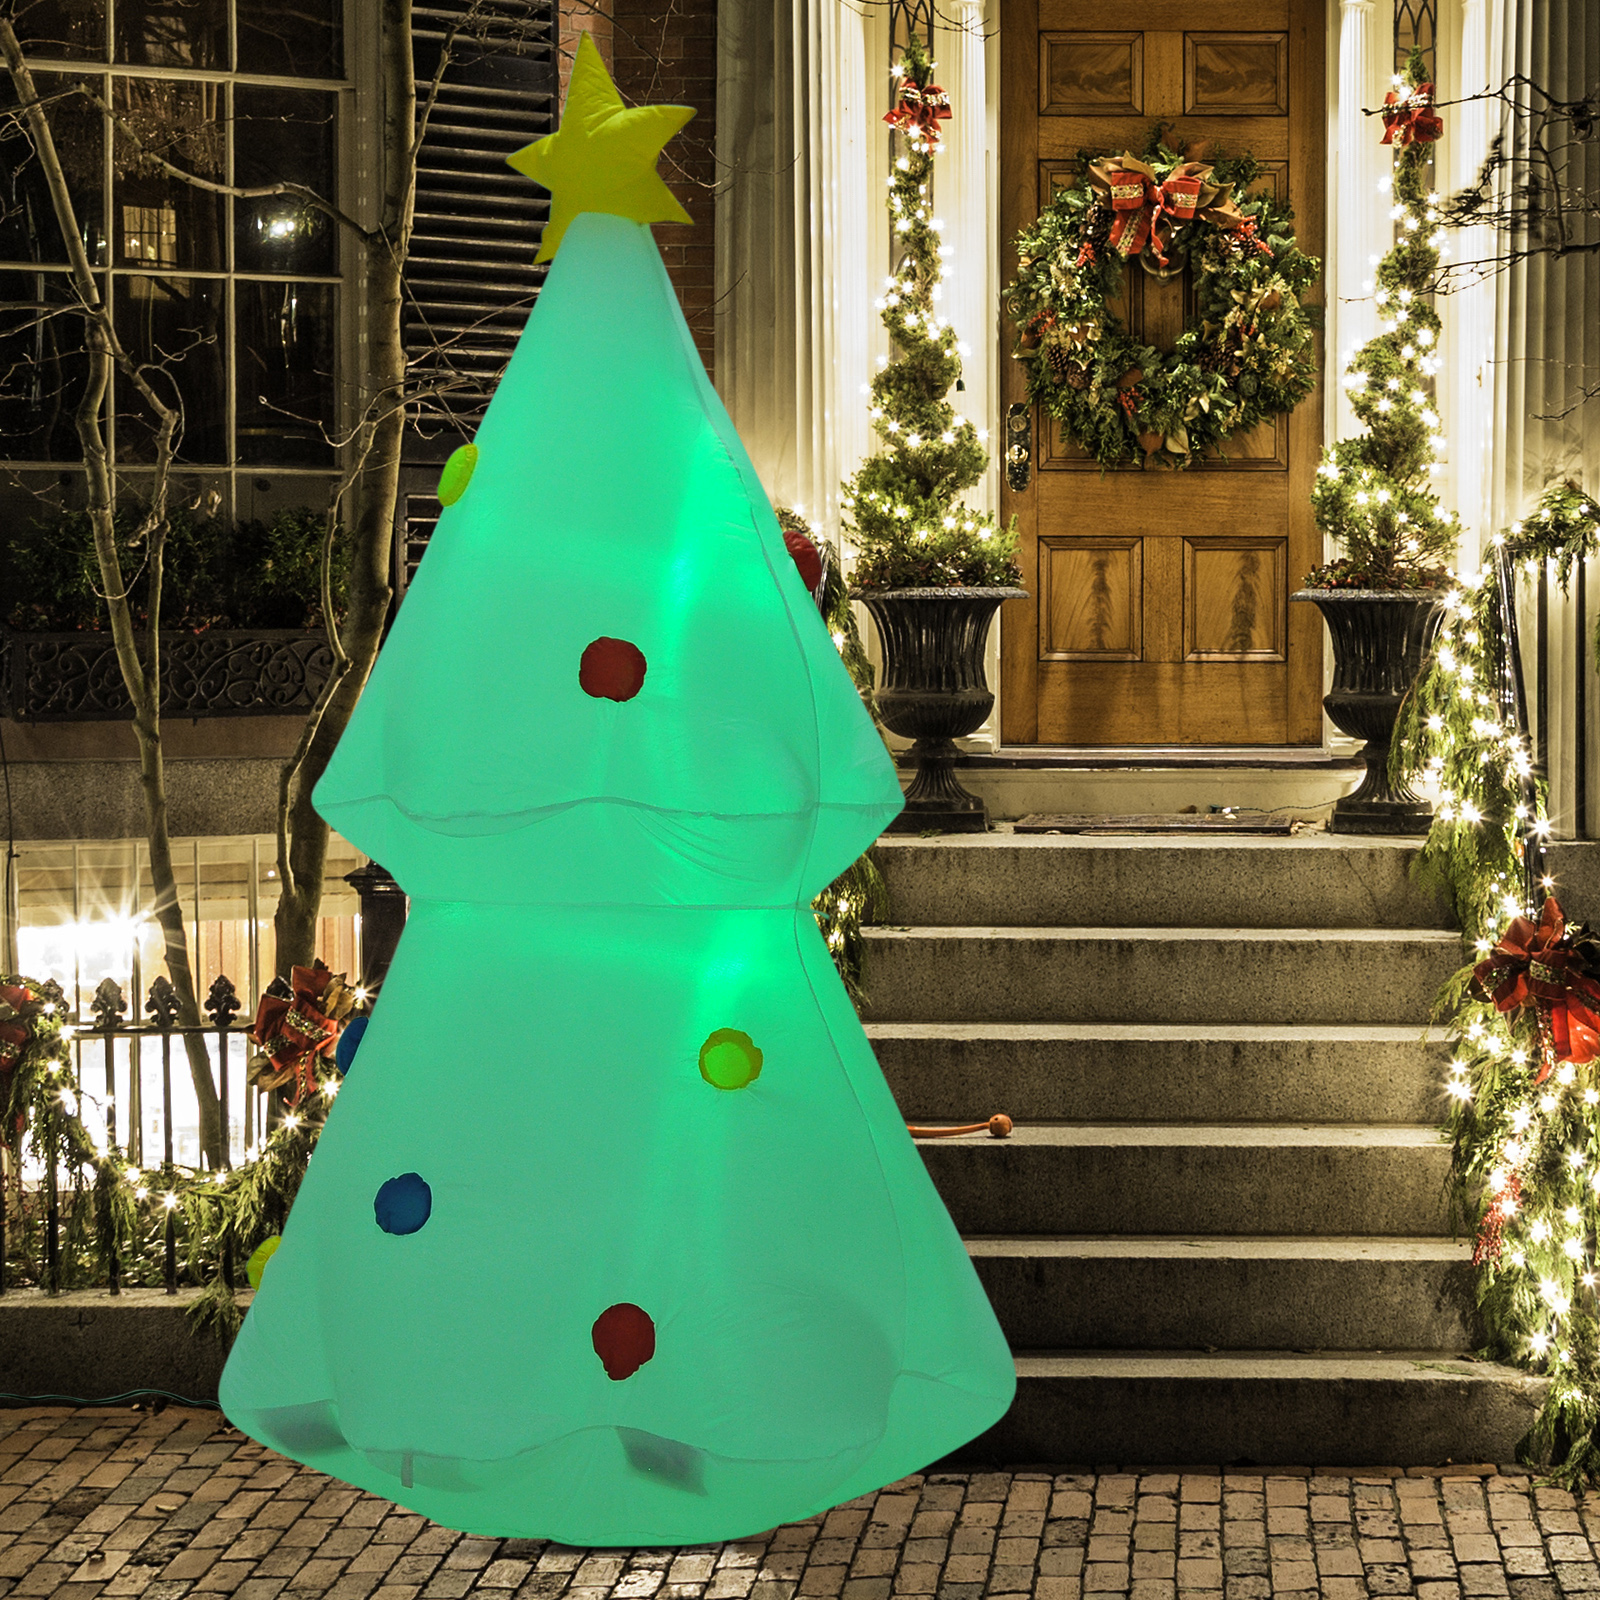 Details About 6ft Inflatable Christmas Tree Lighted Airblown Holiday Outdoor Yard Decorations